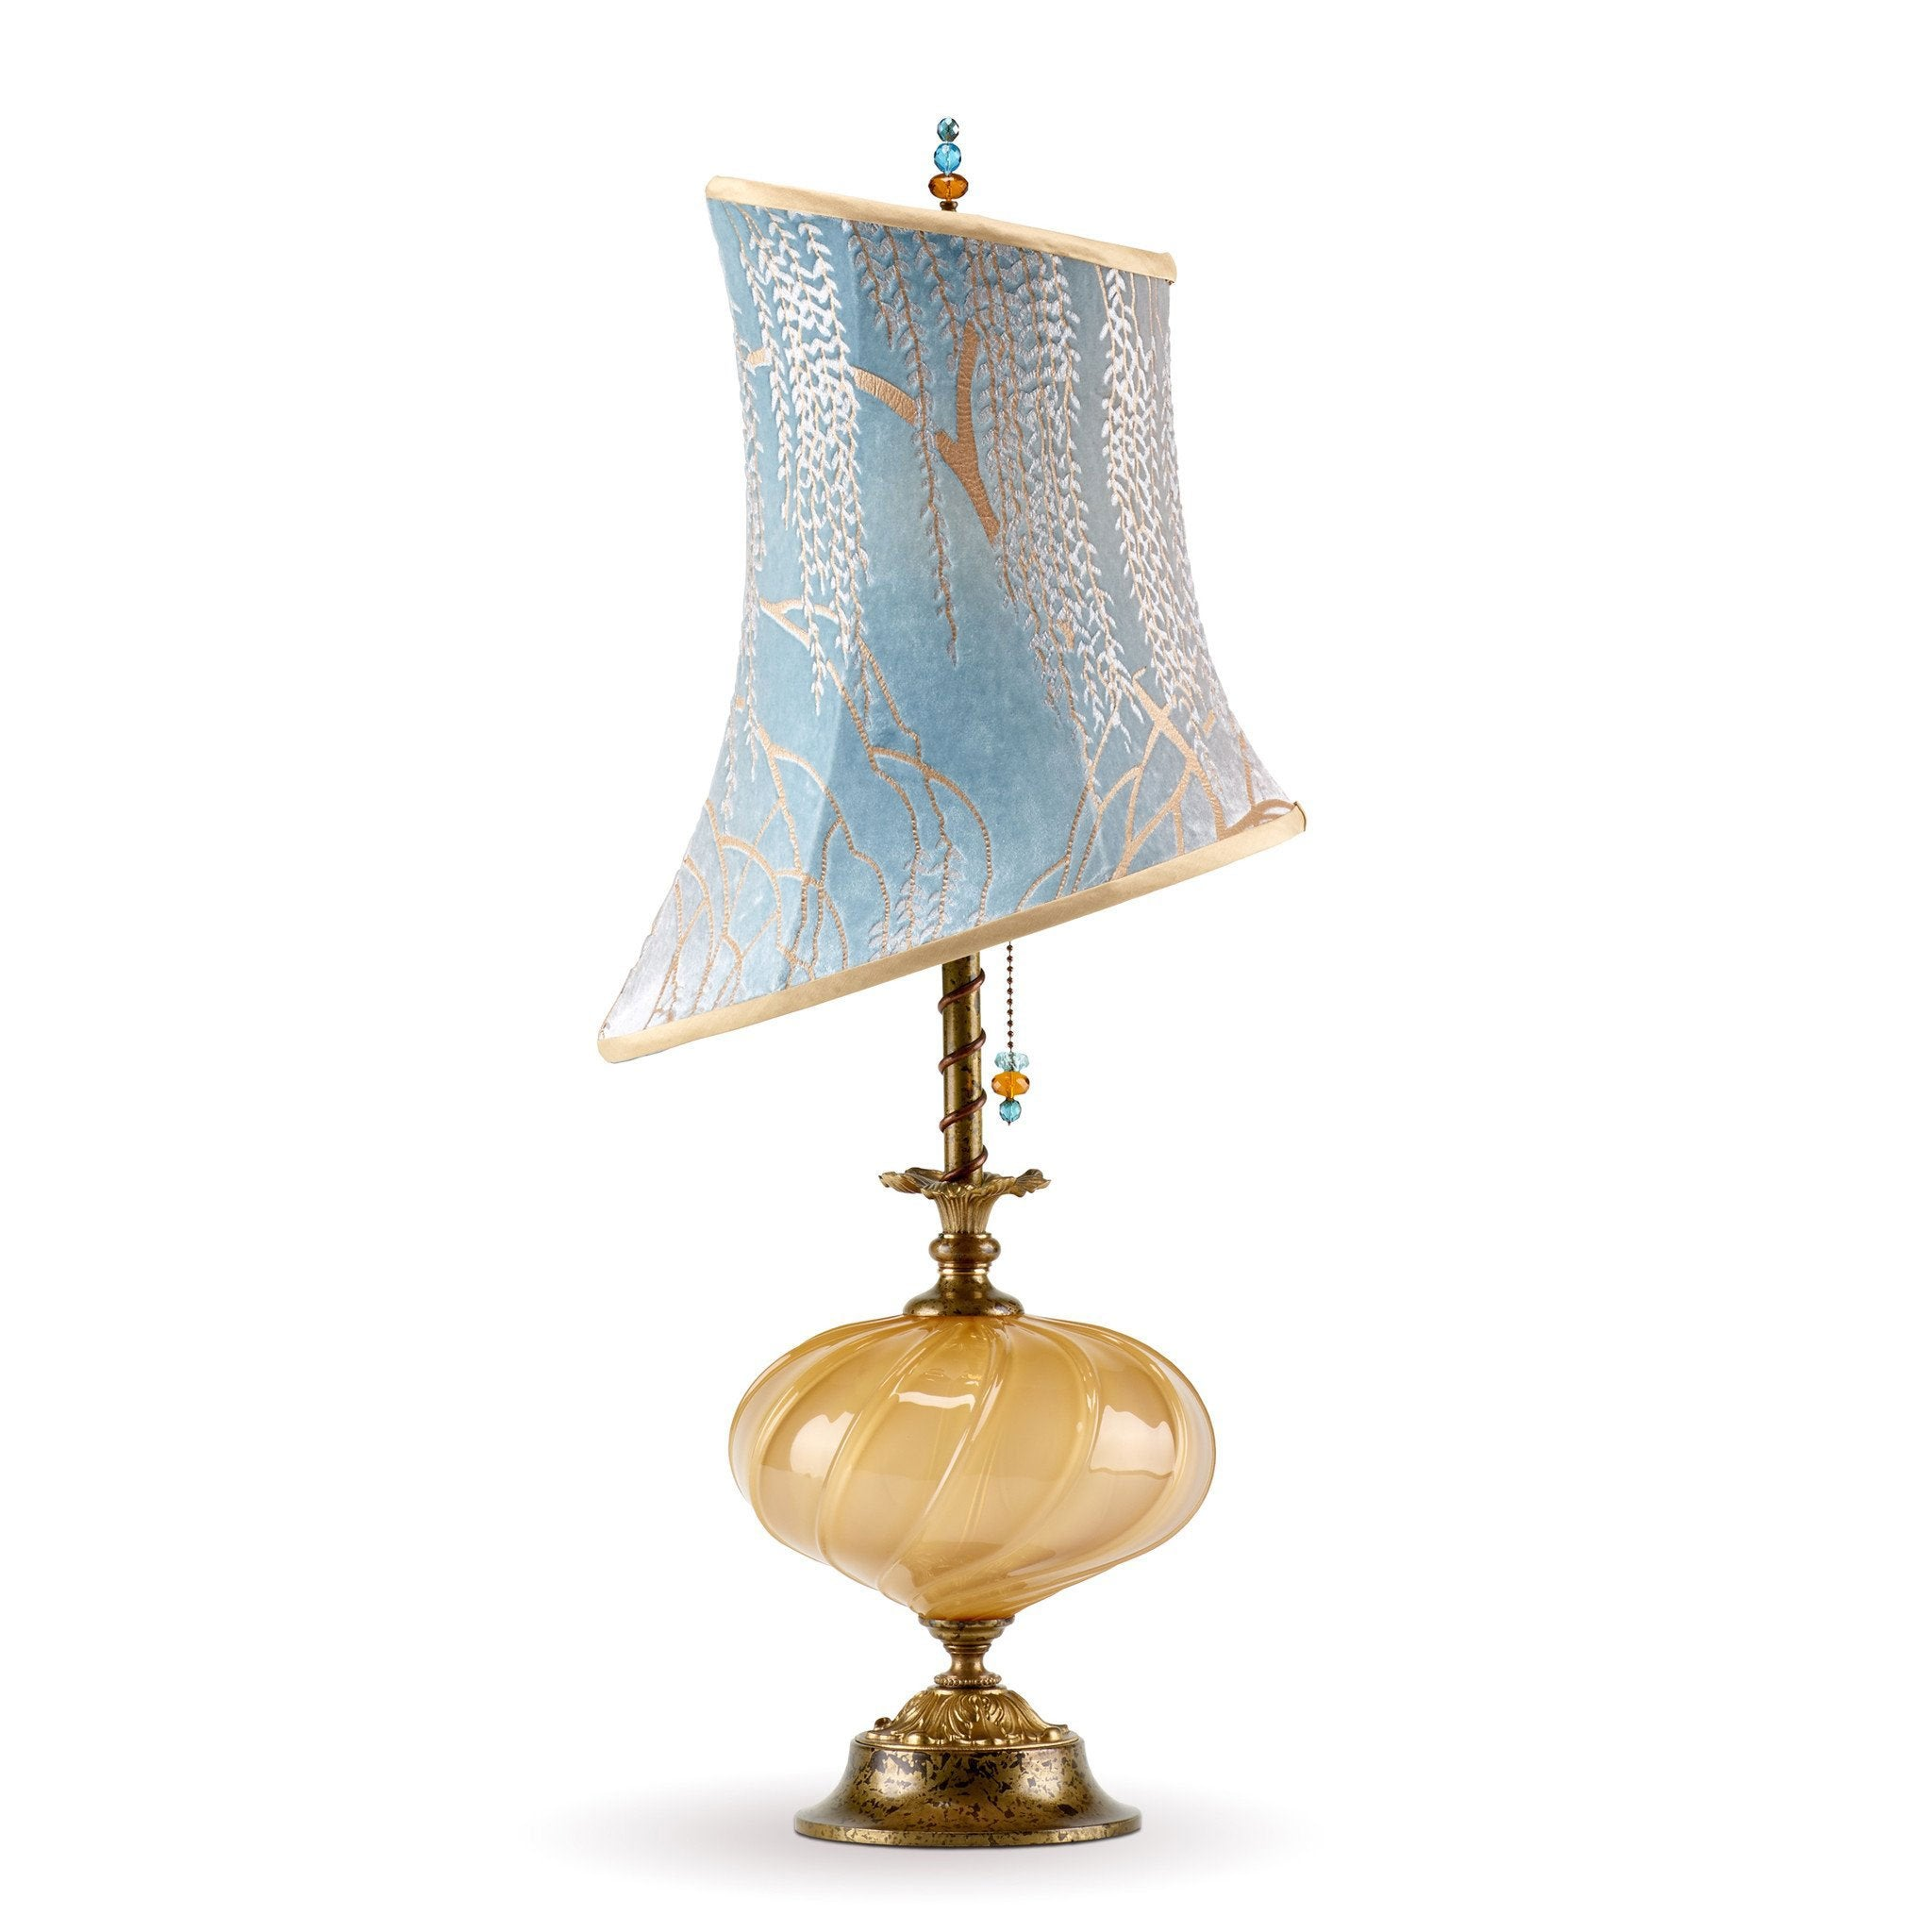 Kinzig Design Alexis Table Lamp 154 M 132 Colors Blue Taupe Gold With Blown  Glass Base